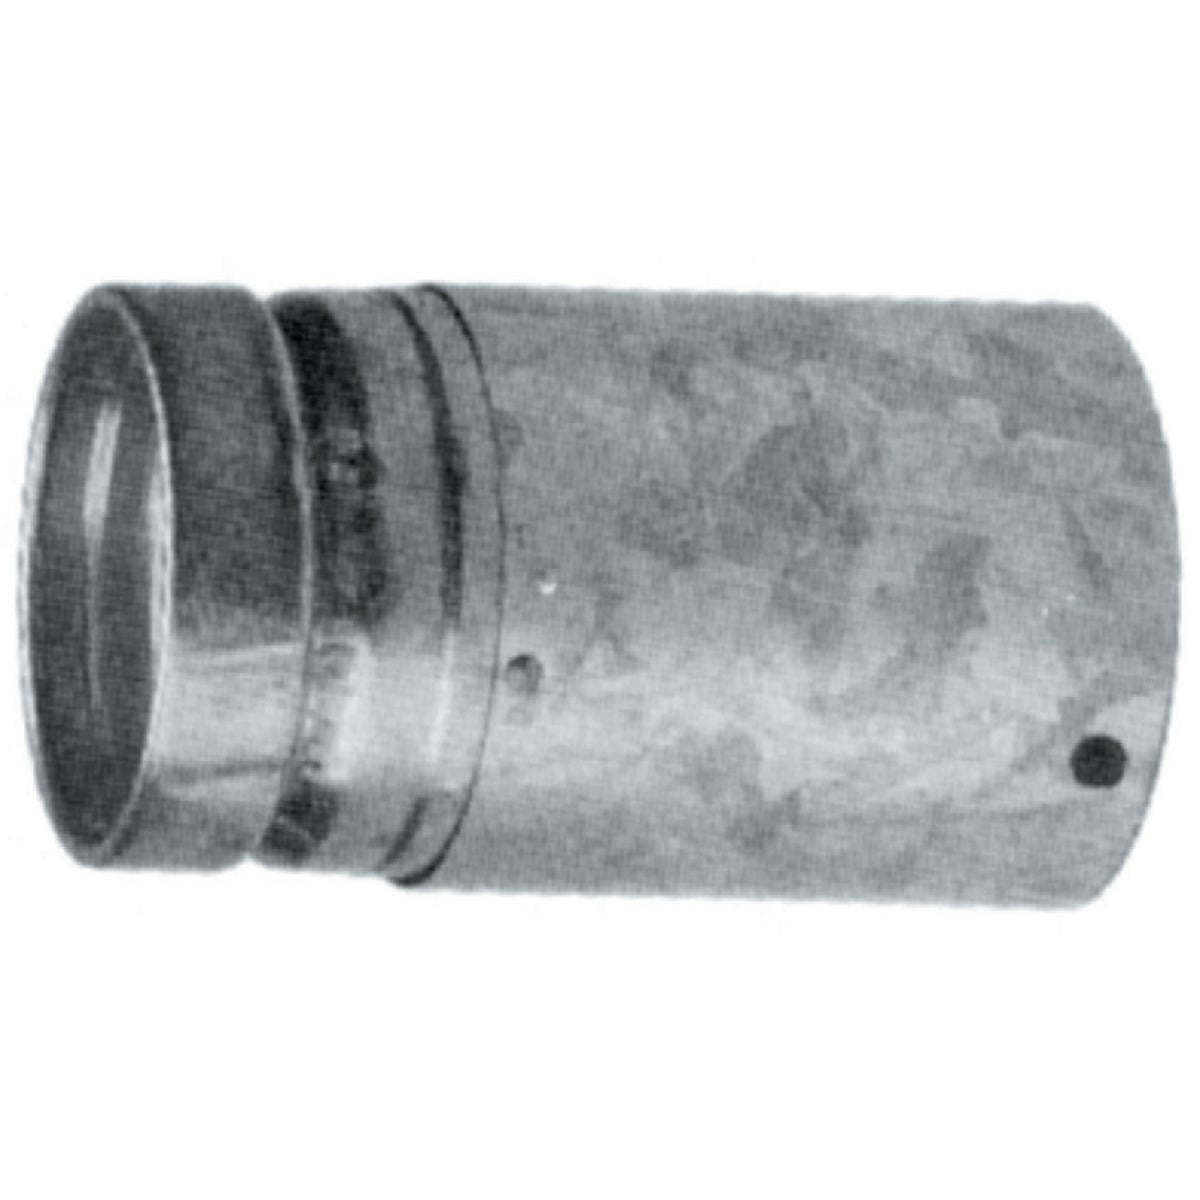 "6"" ADJ GAS VENT PIPE - 6RV-EZAJ18 by Selkirk Corporation"